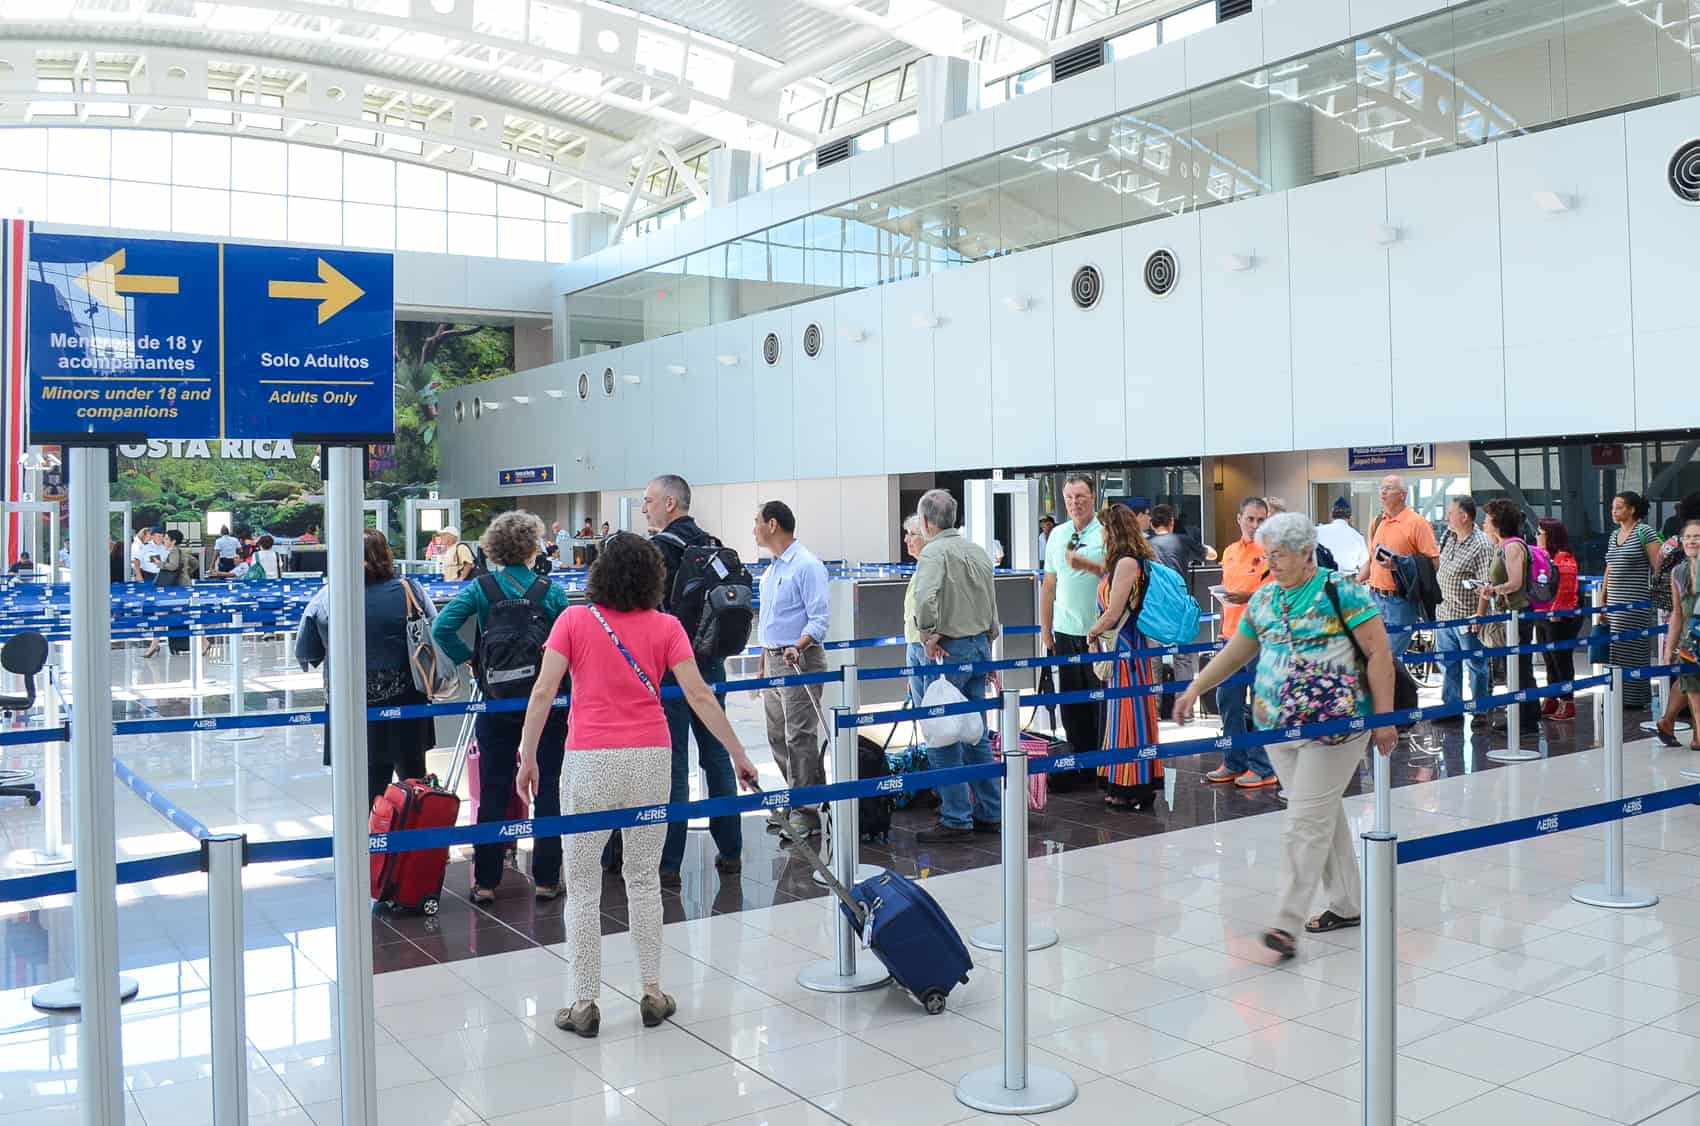 Travelers pass through security at Costa Rica's Juan Santamaría International Airport.